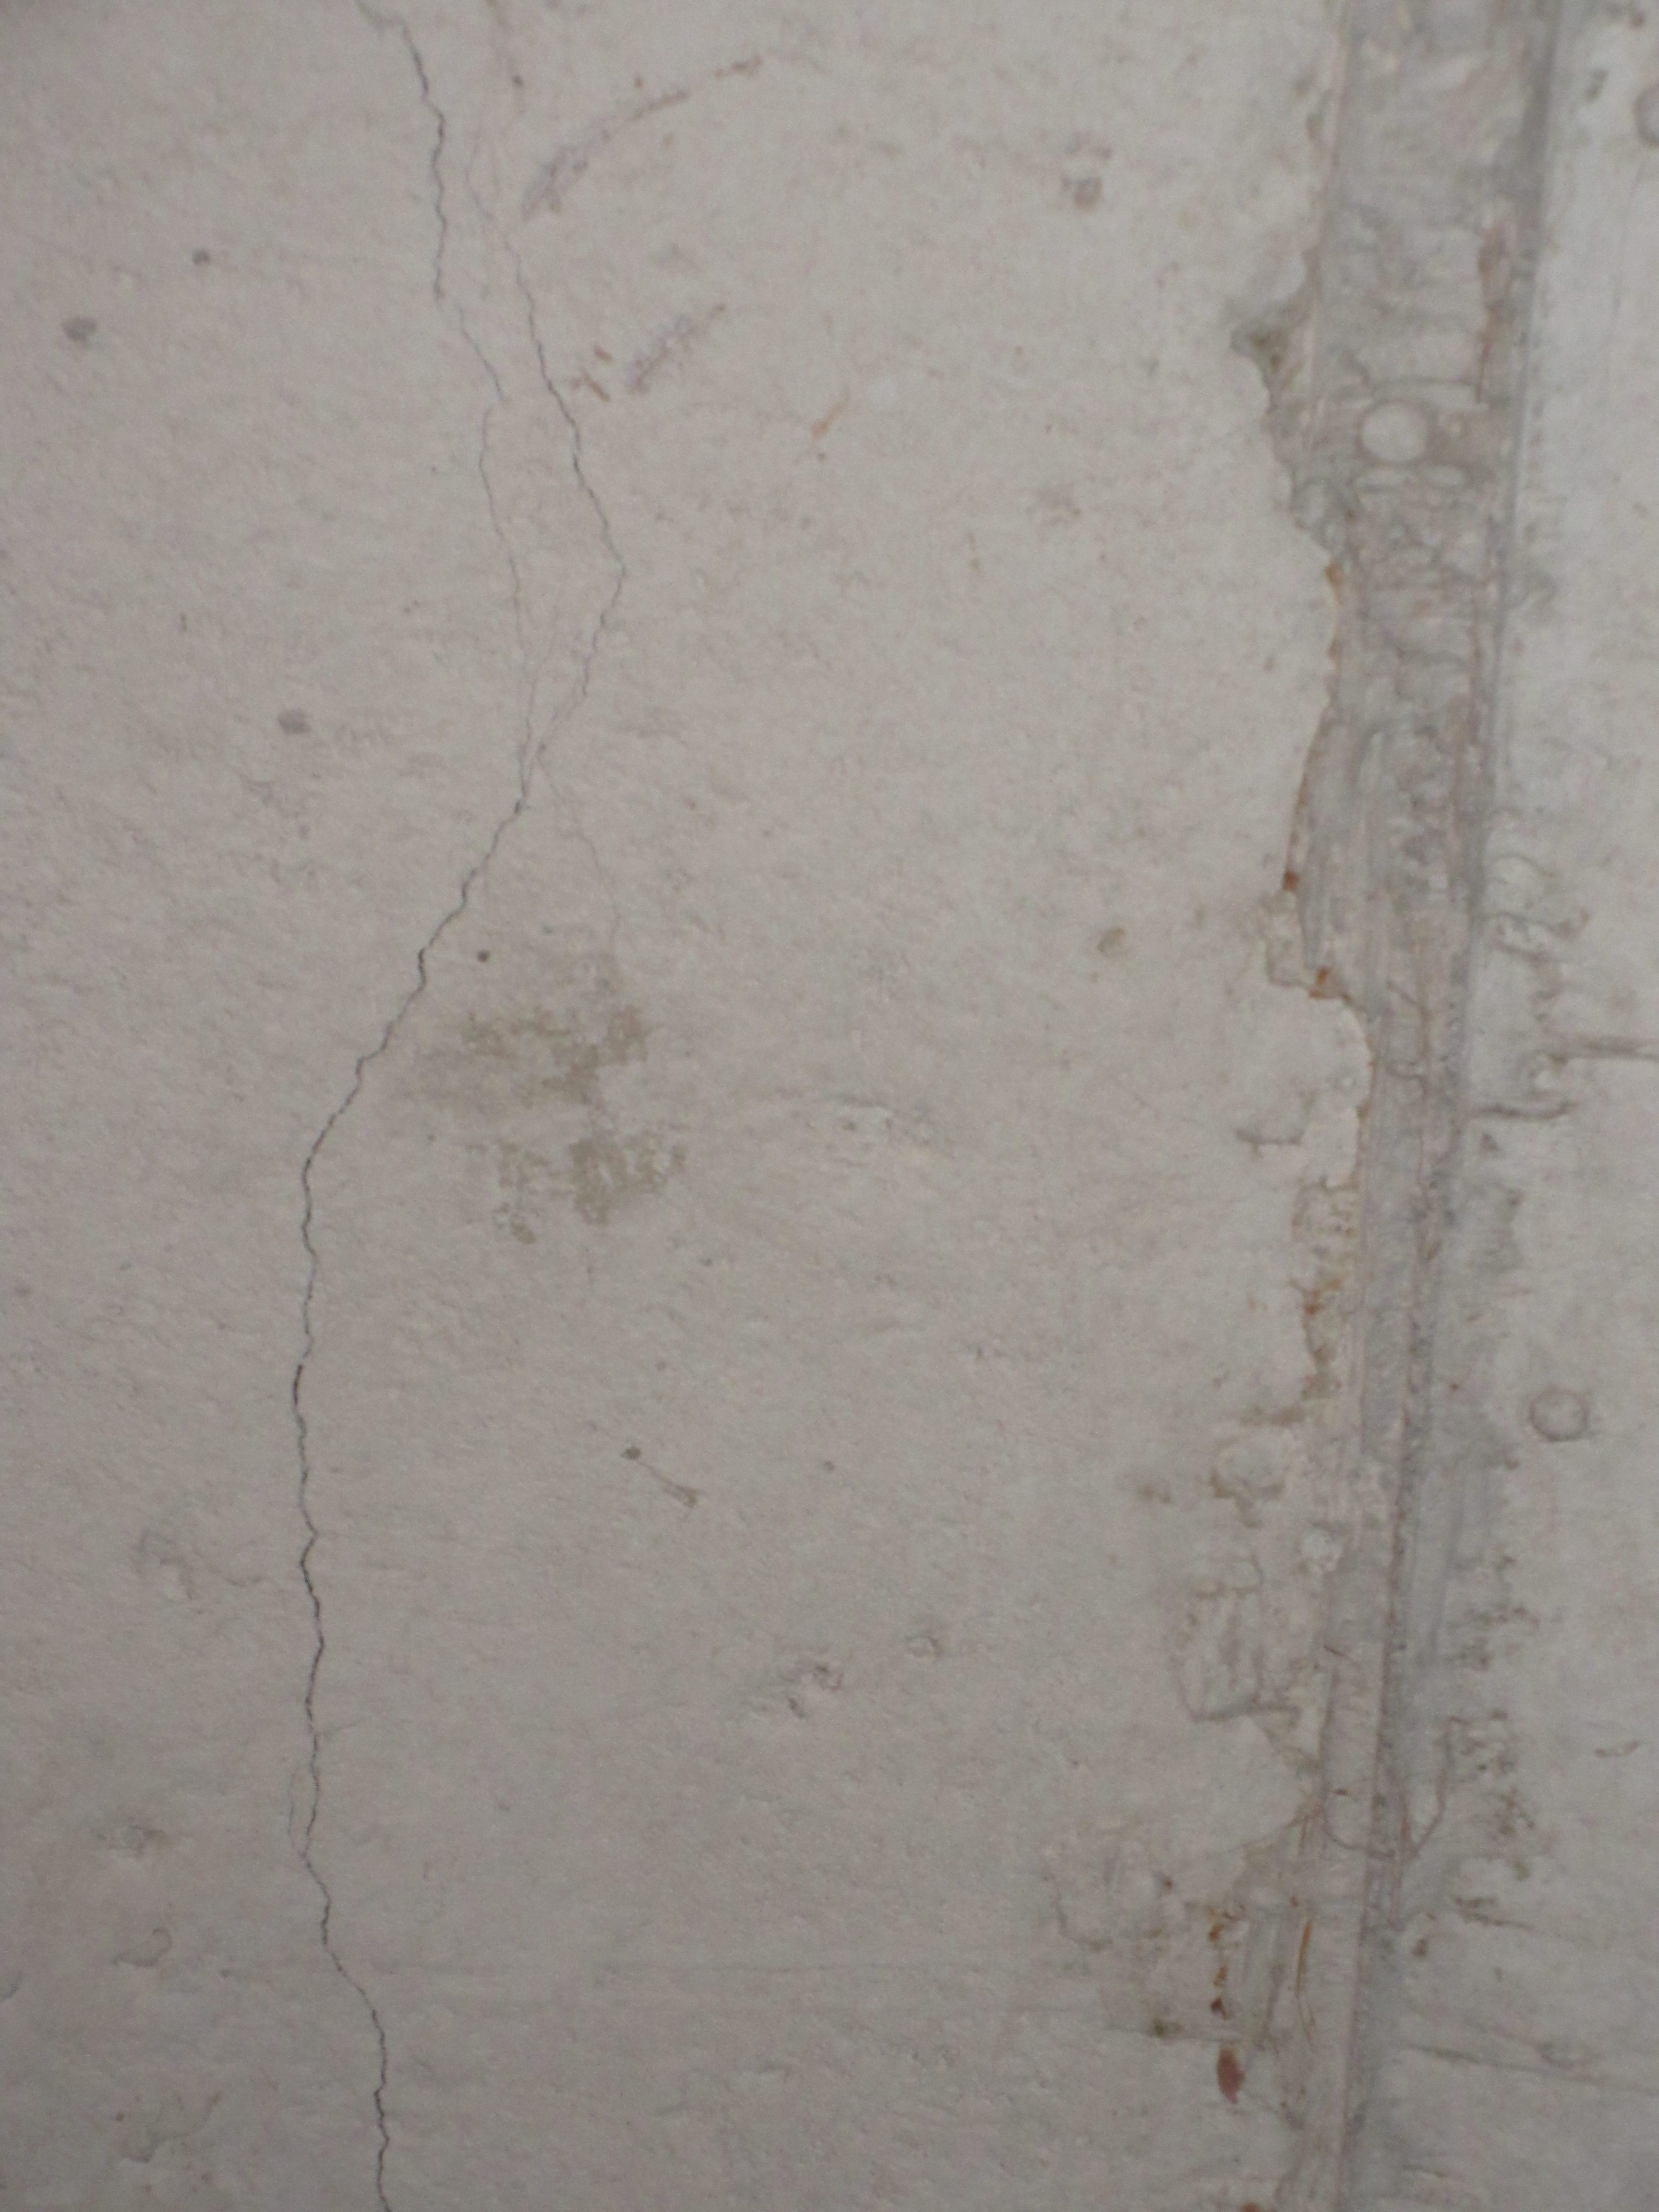 Home Inspection Poured Concrete Cracks In The Foundation